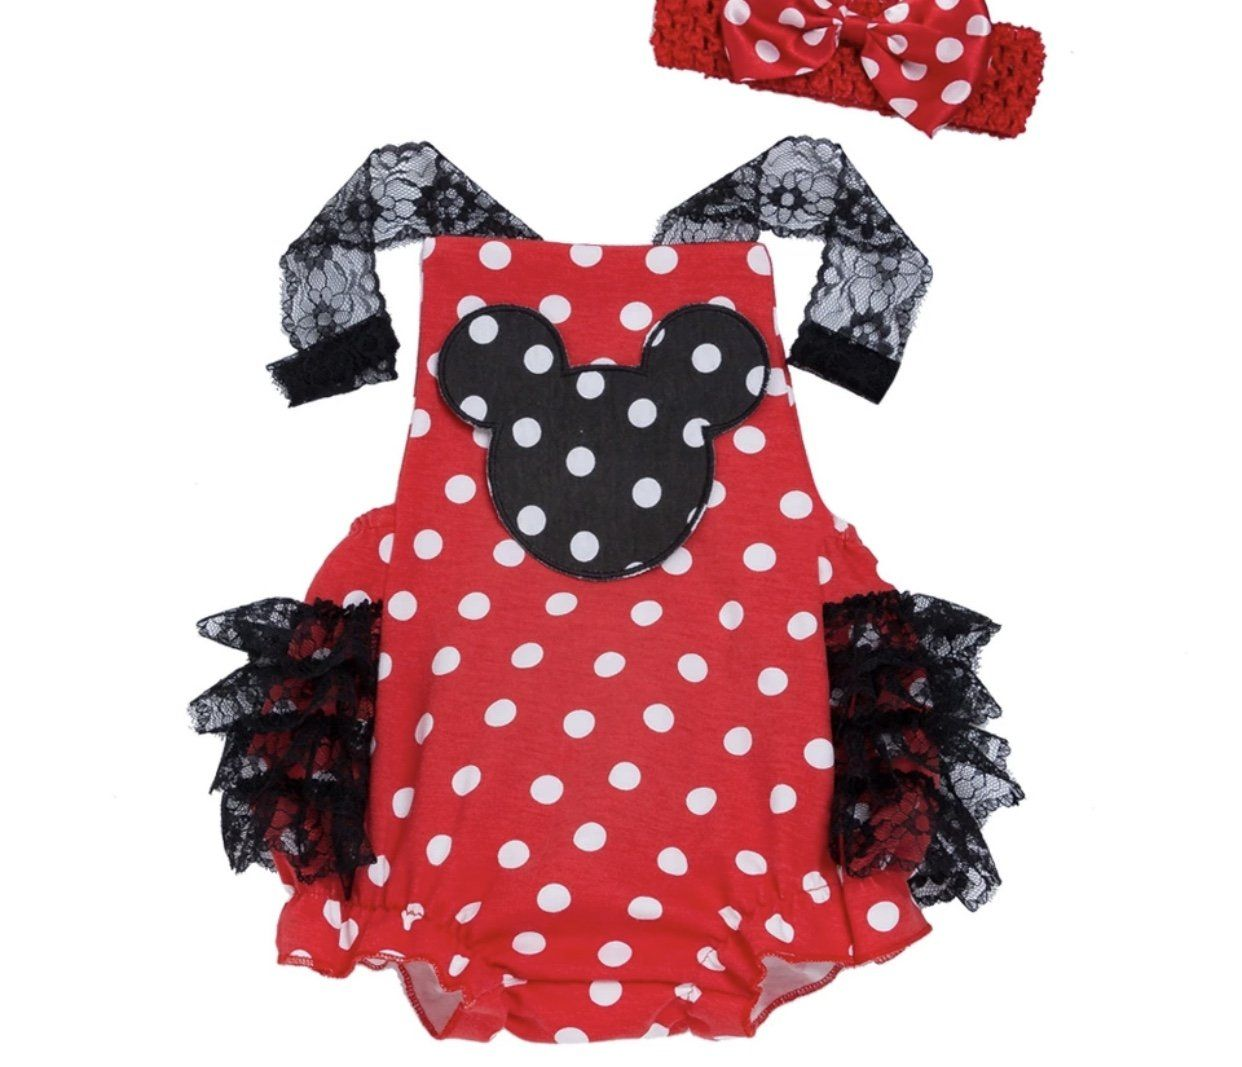 bdf26740c Girls Minnie Mouse Romper Baby Minnie Mouse Disney Onesie Outfit Set ...